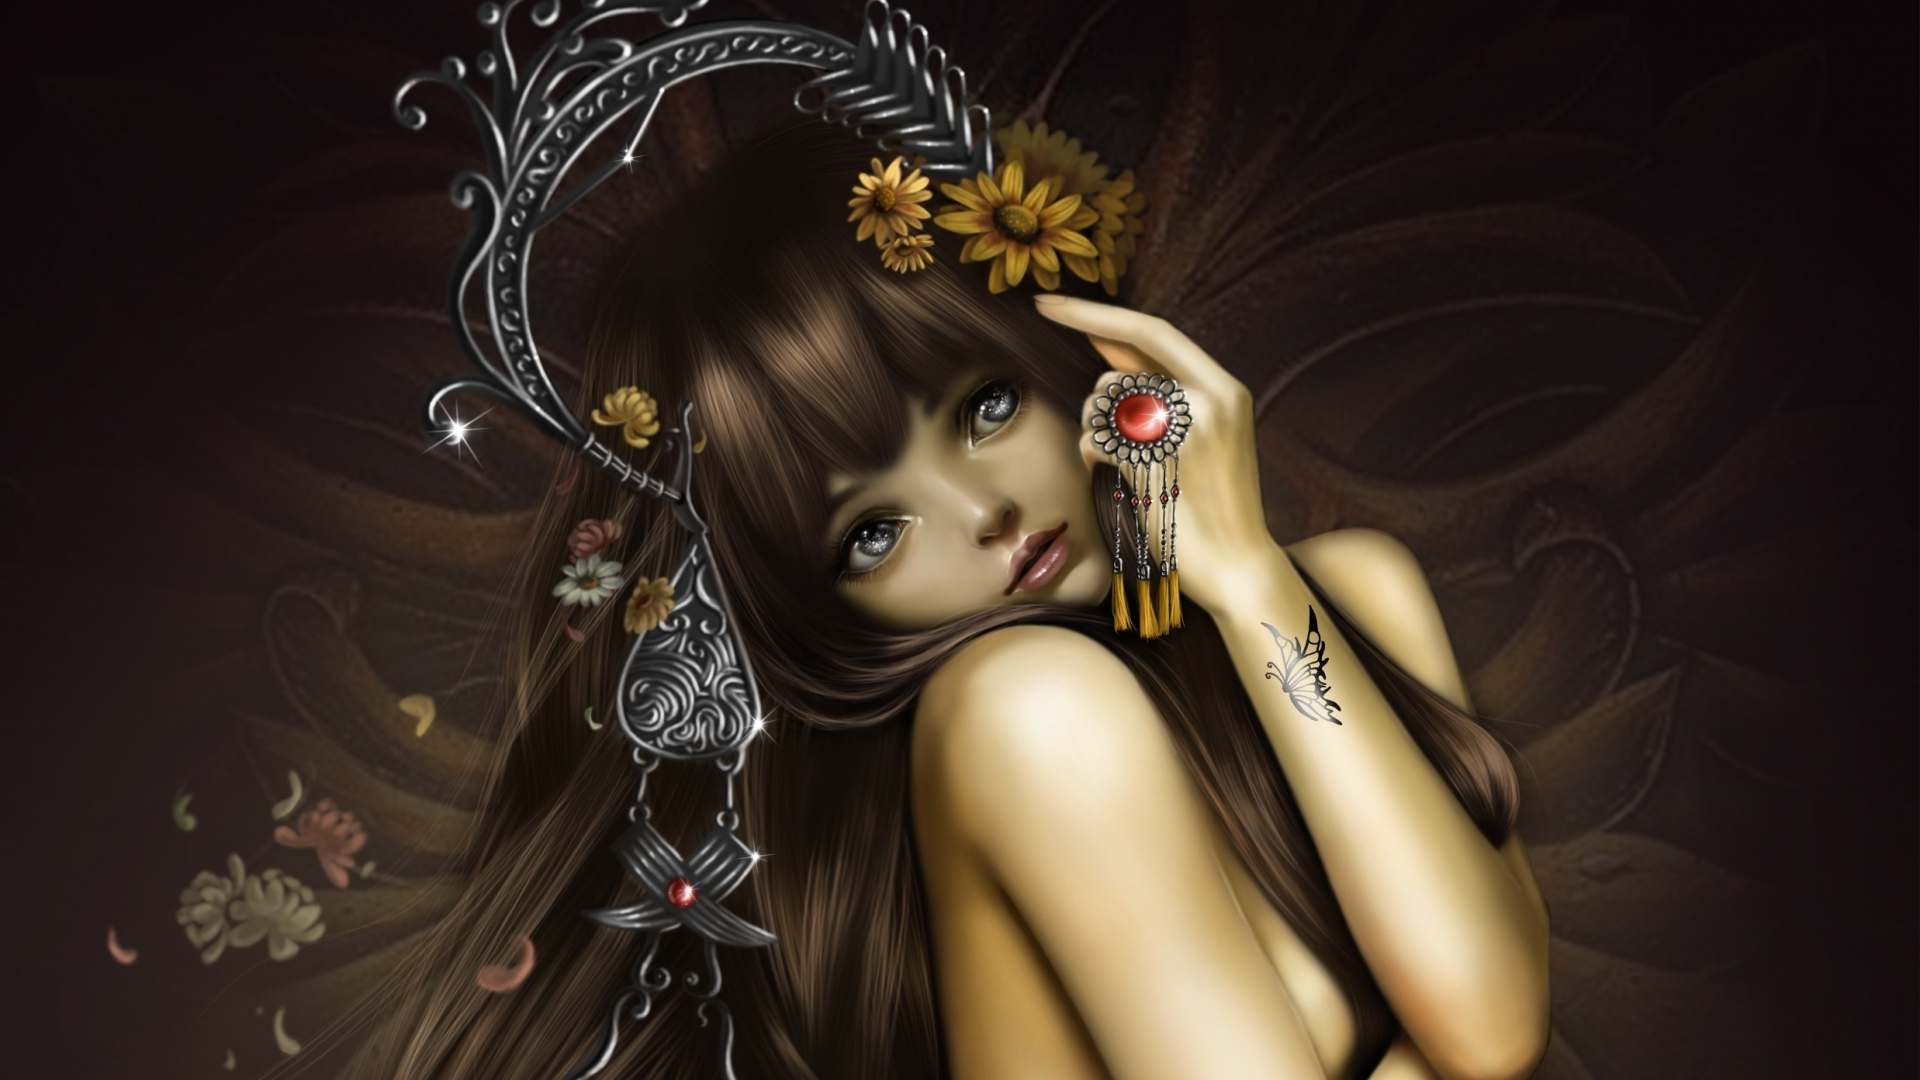 girl-eyes-tattoo-butterfly-hair-ornaments-1920x1080